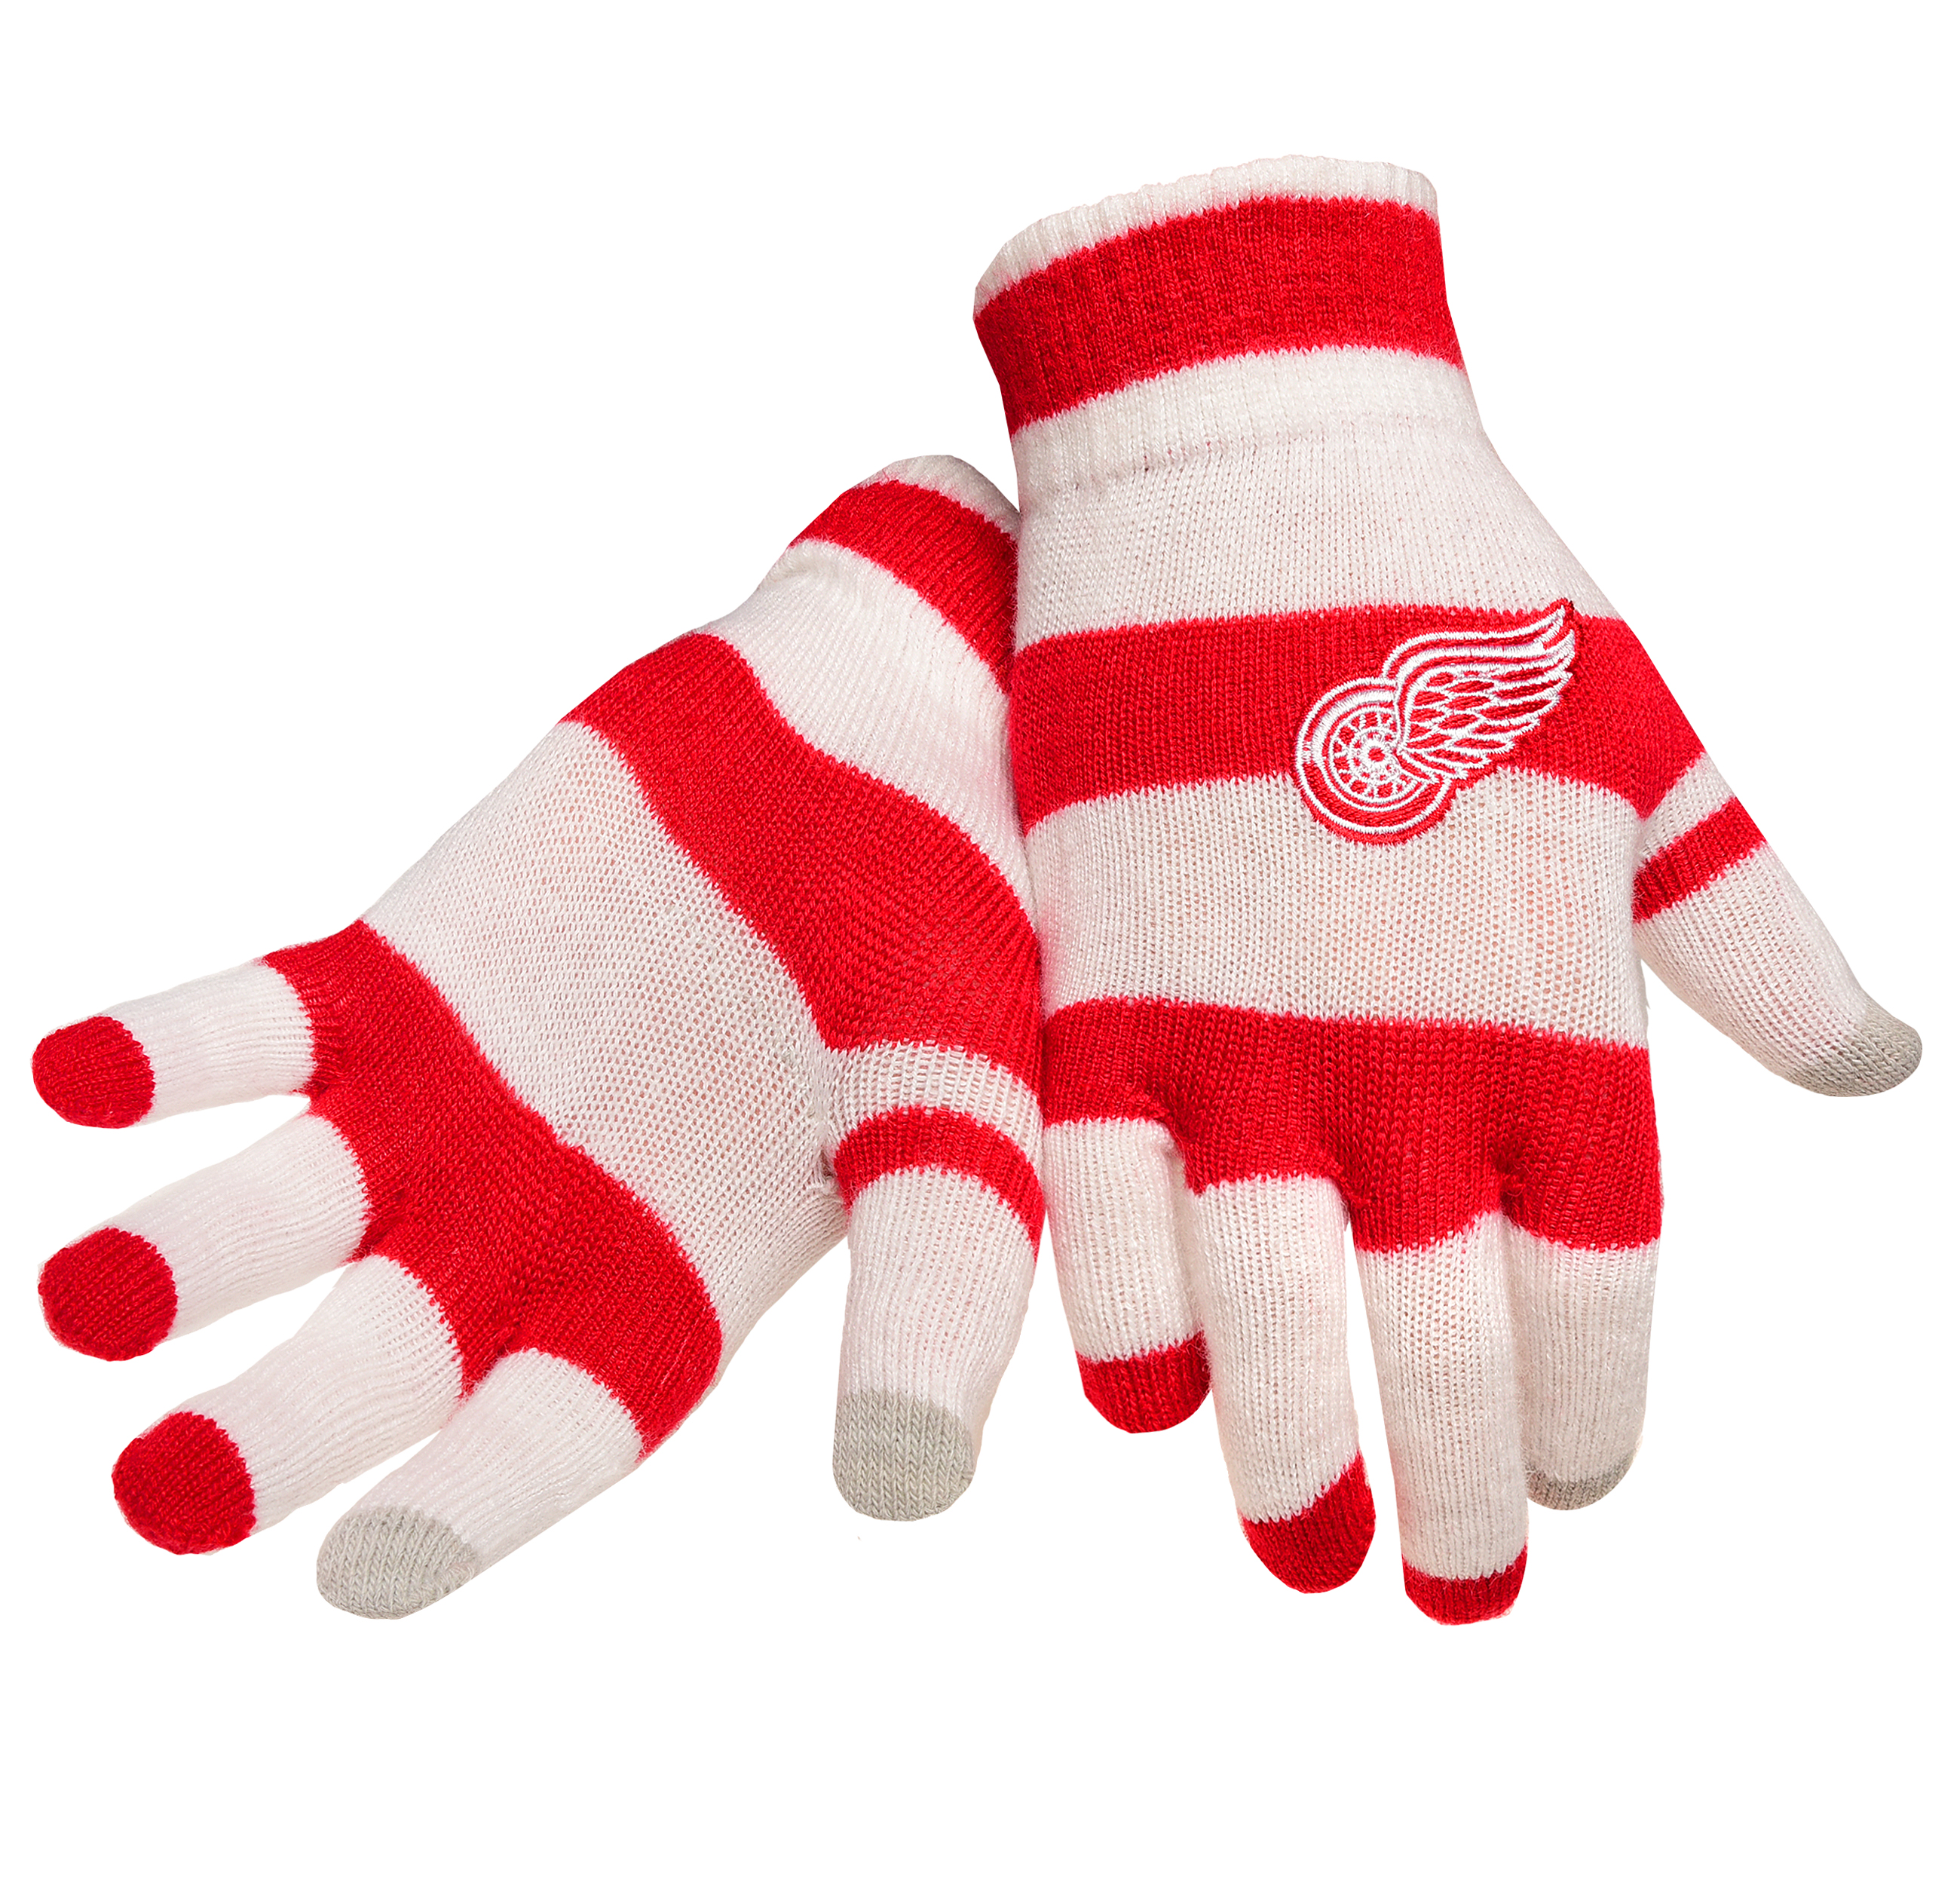 Detroit Red Wings Official NHL Glove Stripe Outdoor Winter Stretch Knit by Forever Collectibles 545378 by Forever Collectibles